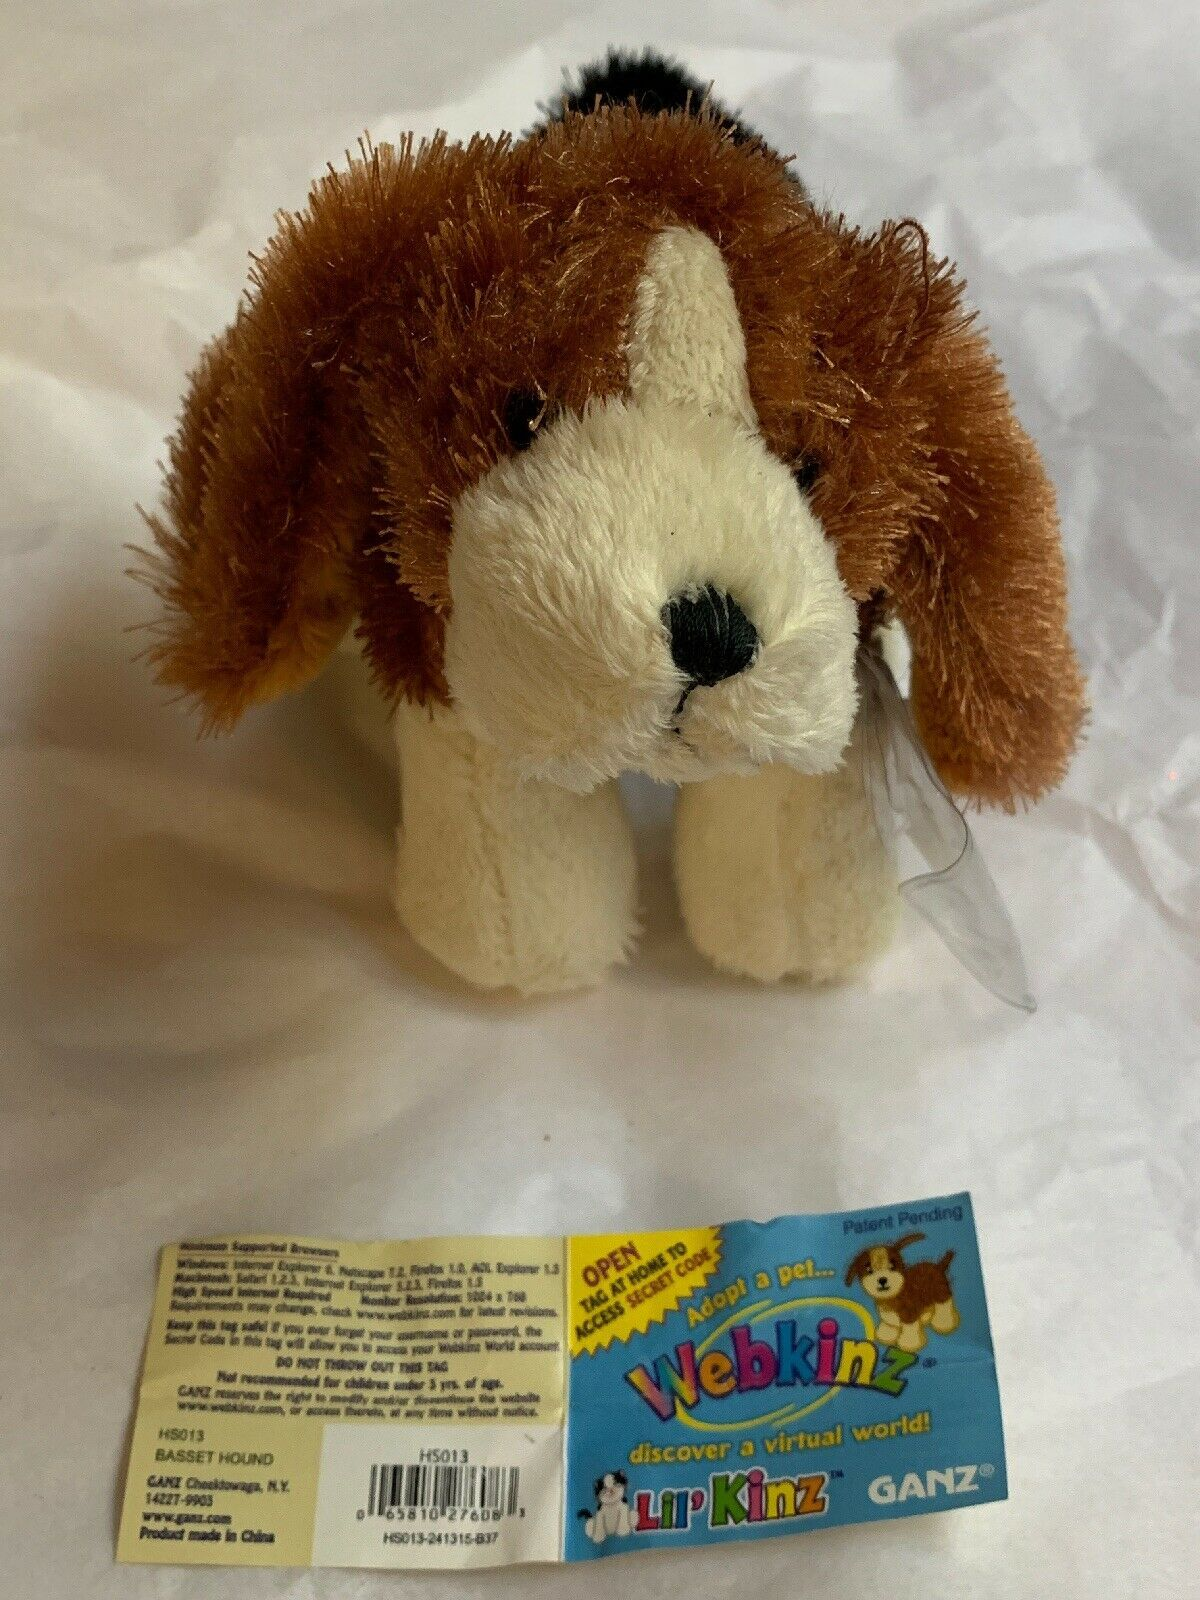 Ganz Webkinz Shaggy Brown White Basset Hound Puppy Dog Stuffed Plush Animal 9in